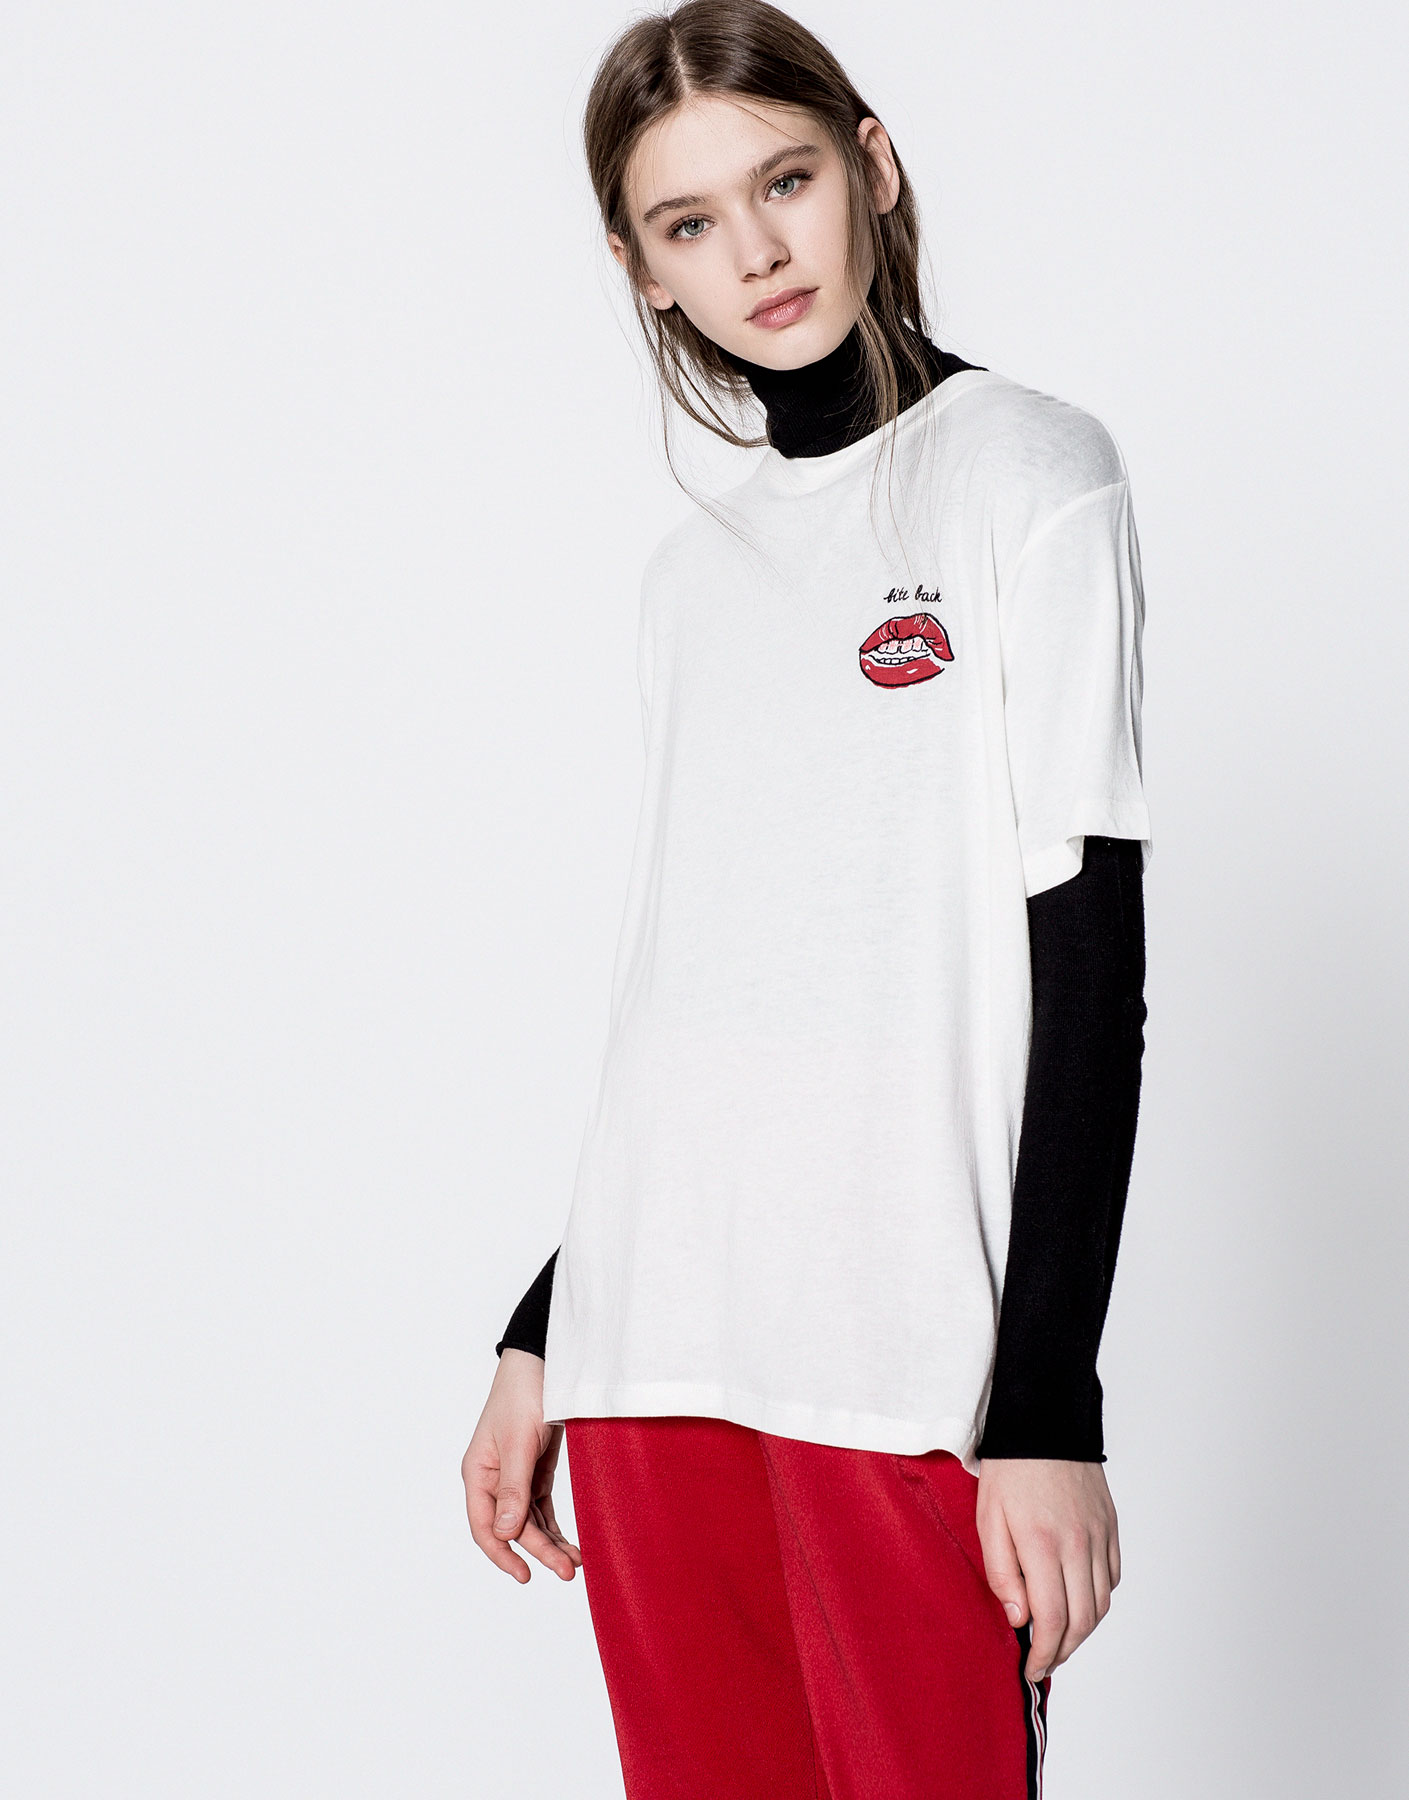 Mouth embroidered T-shirt